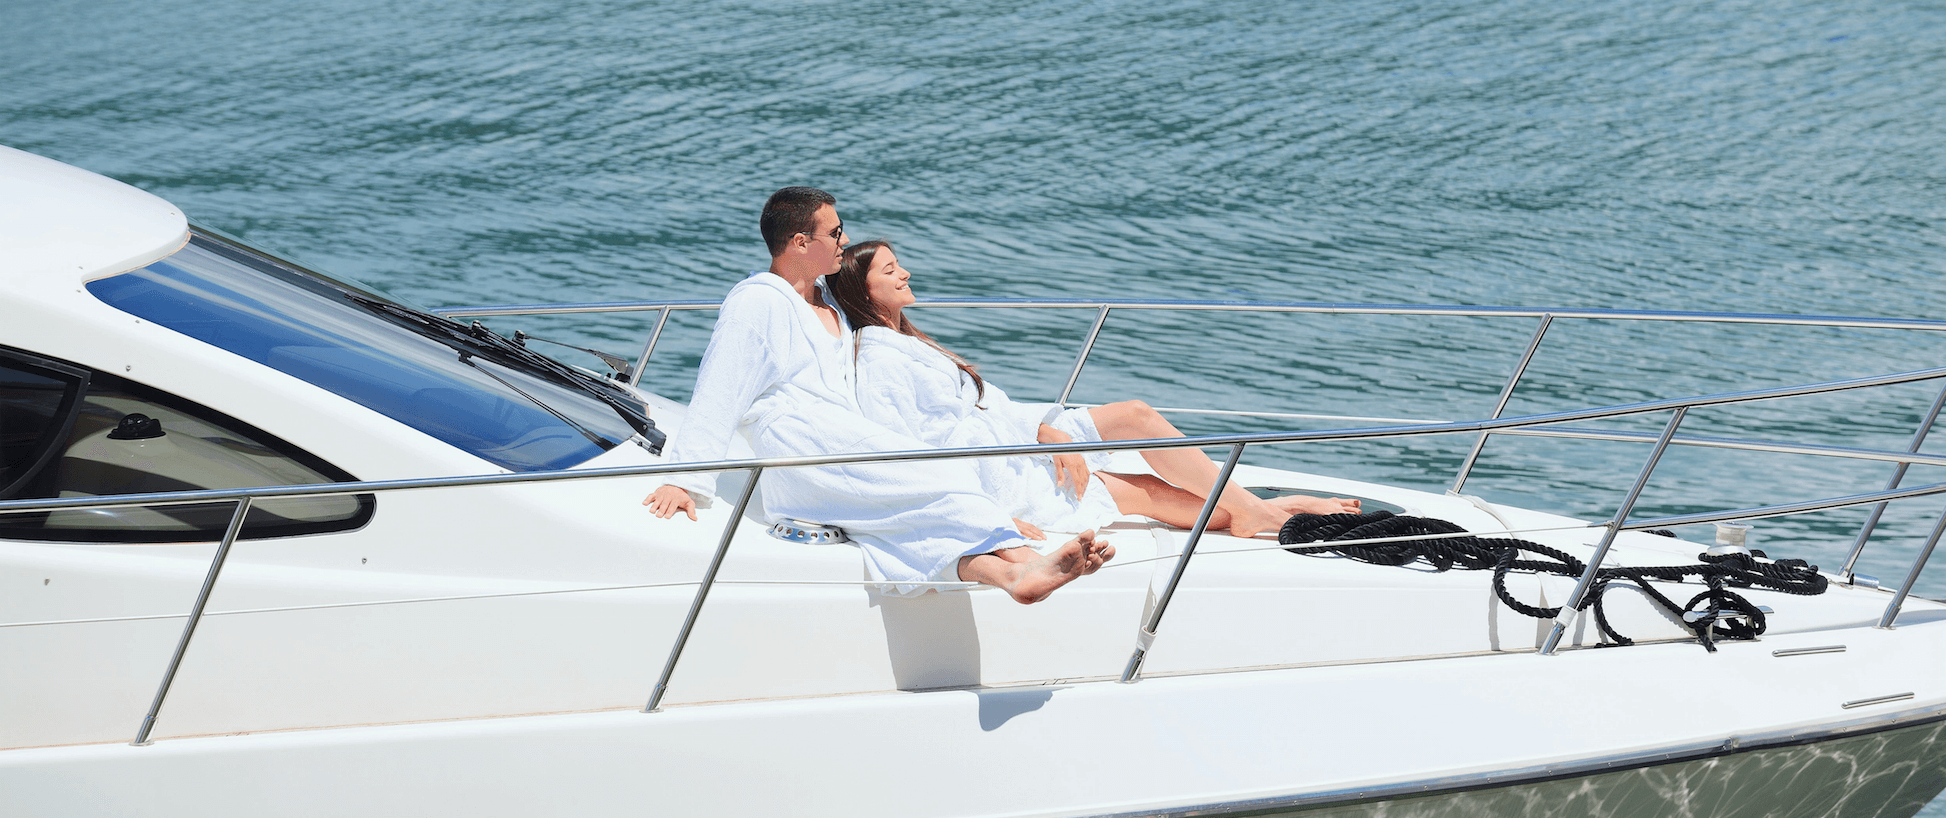 france-yacht-charter-couple-luxury-boat